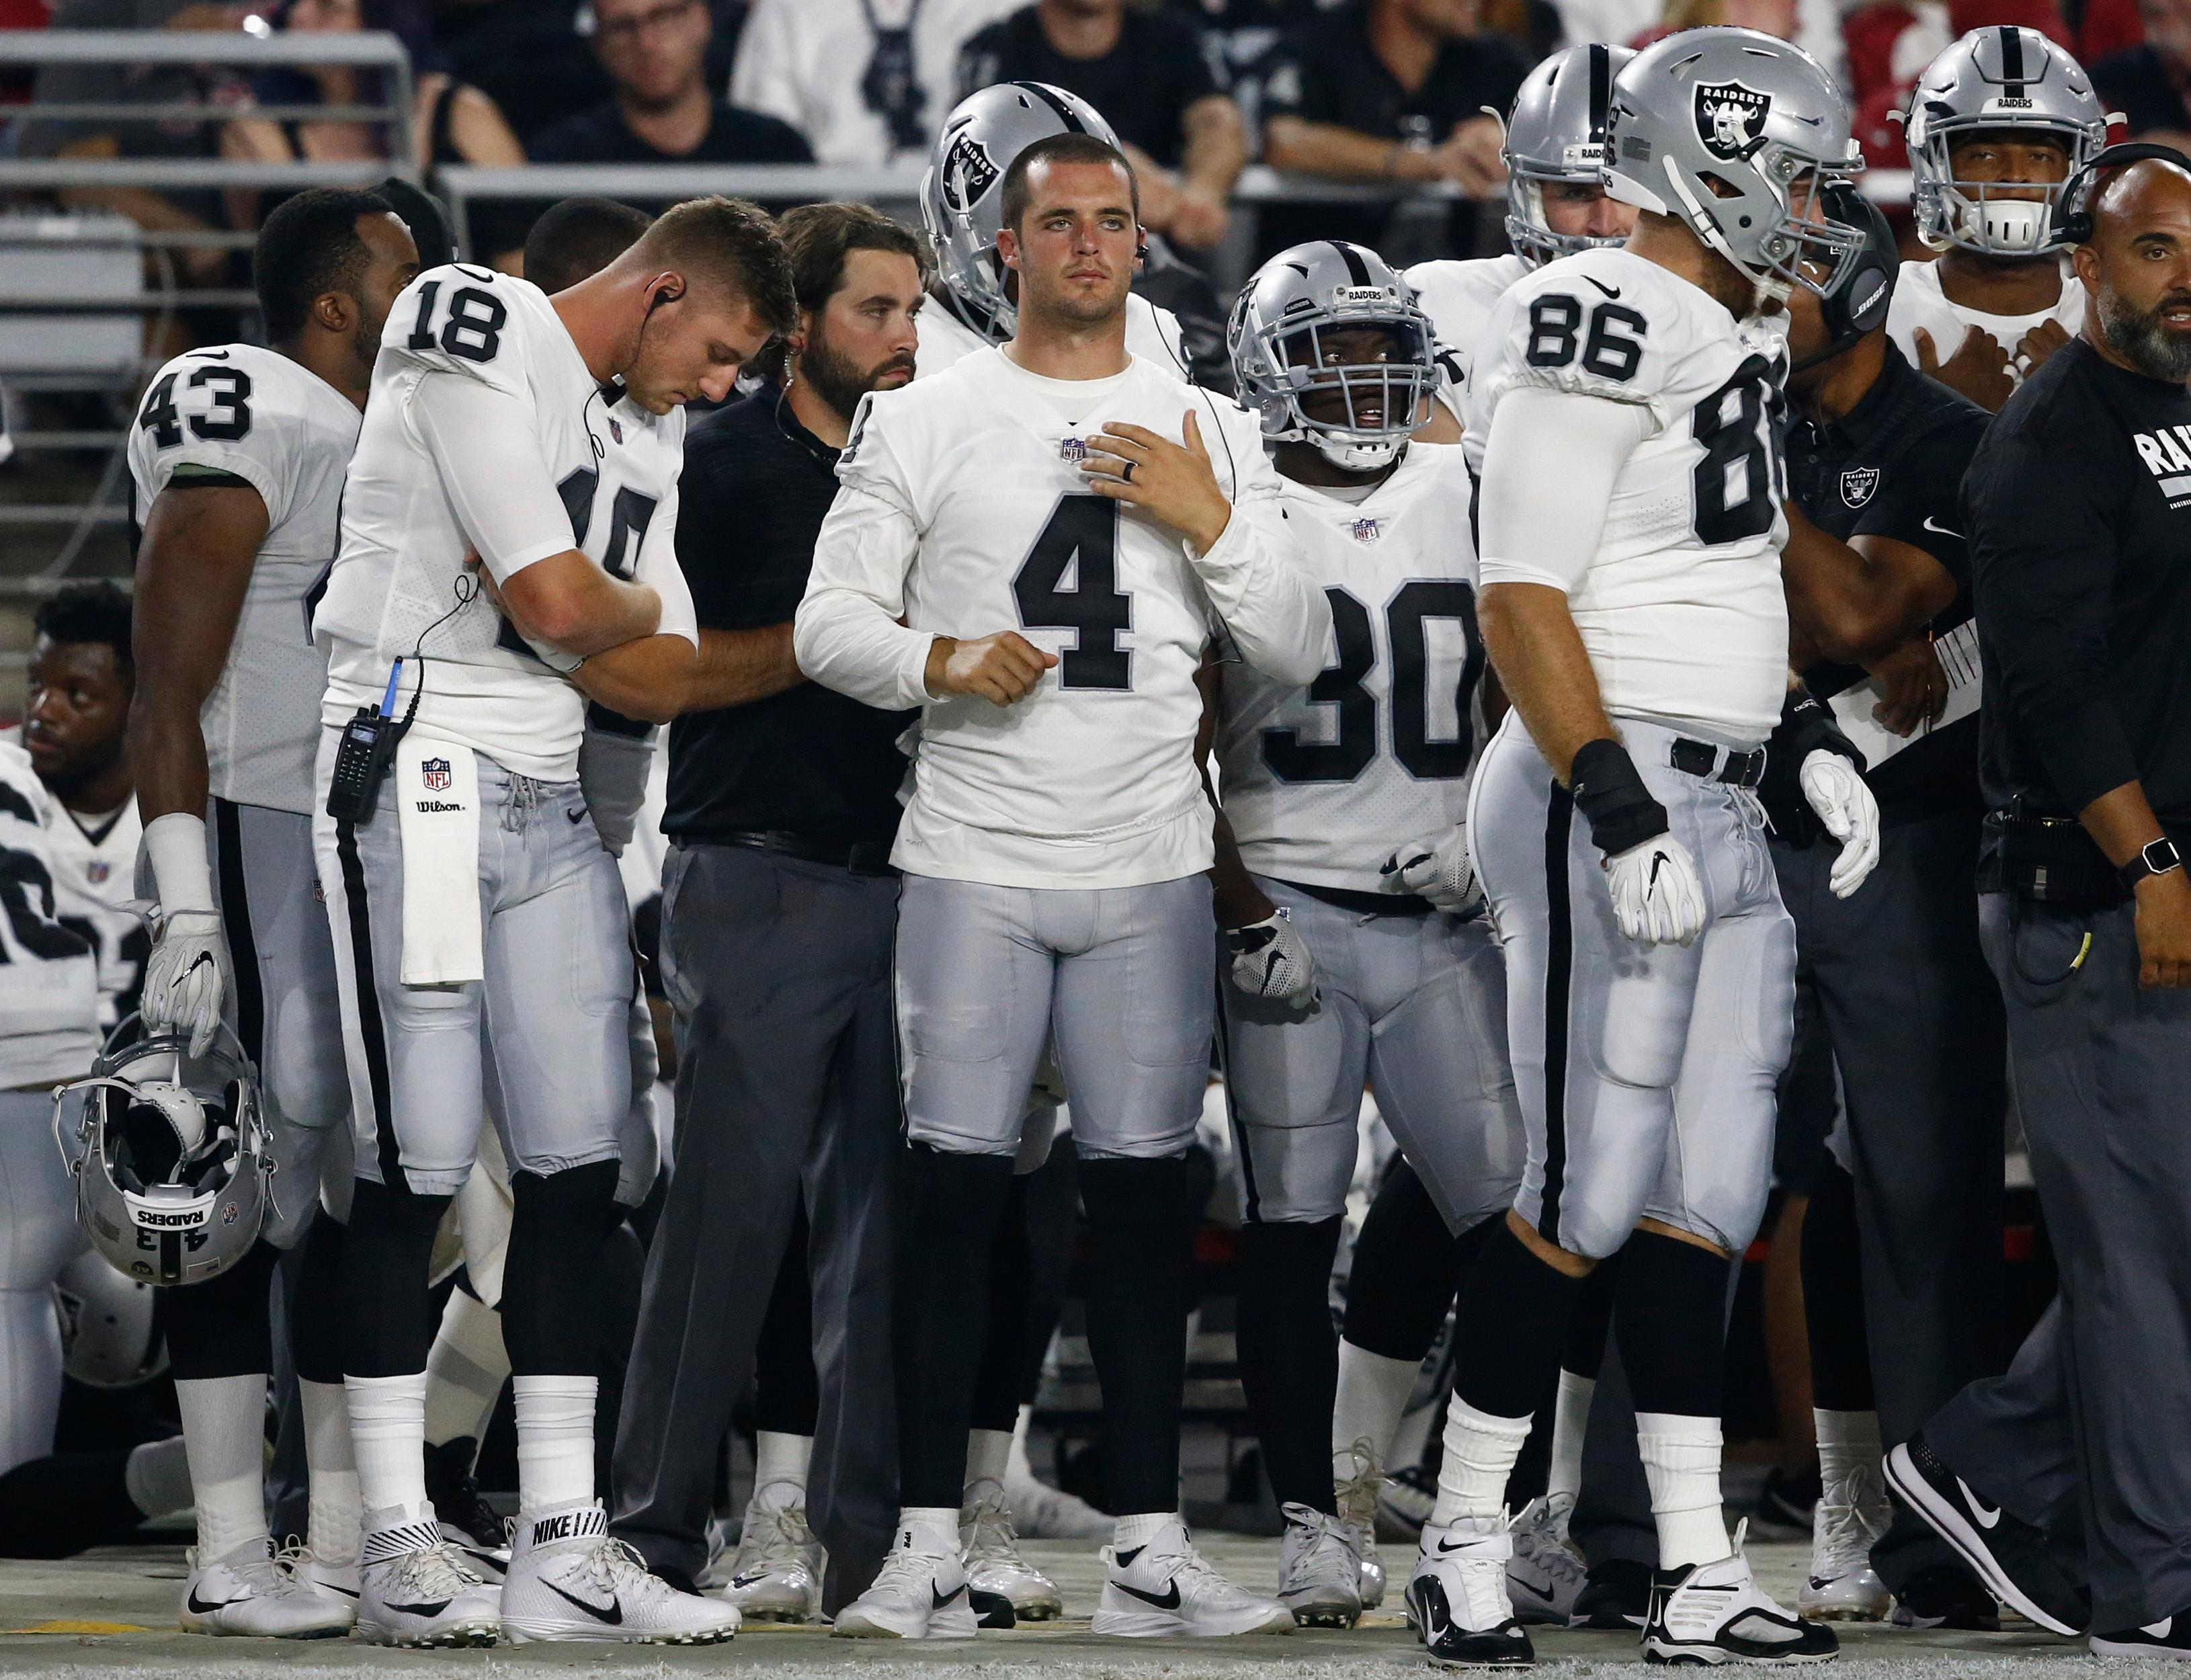 Oakland Raiders quarterback Derek Carr (4) watches from the sidelines during the first half of the team's NFL preseason football game against the Arizona Cardinals, Saturday, Aug. 12, 2017, in Glendale, Ariz. (AP Photo/Ross D. Franklin)